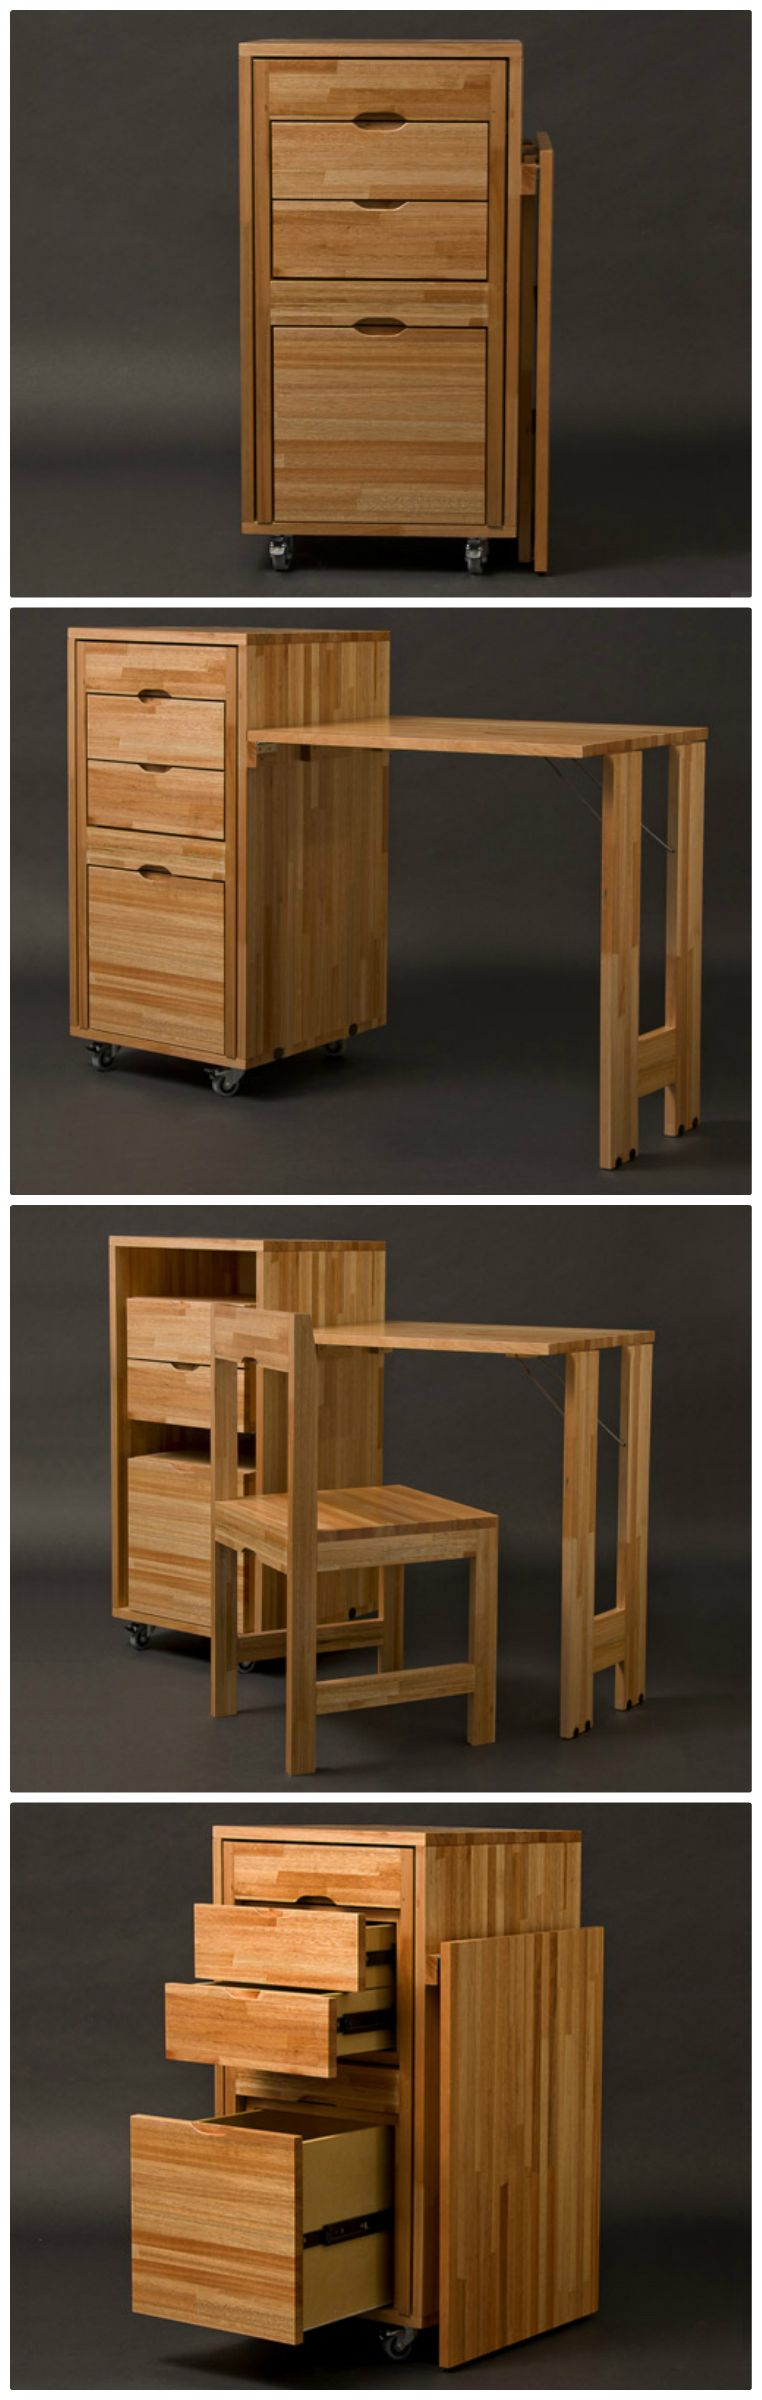 Do It Yourself Home Design: Transforming Cabinet With Hidden Table And Chairs From